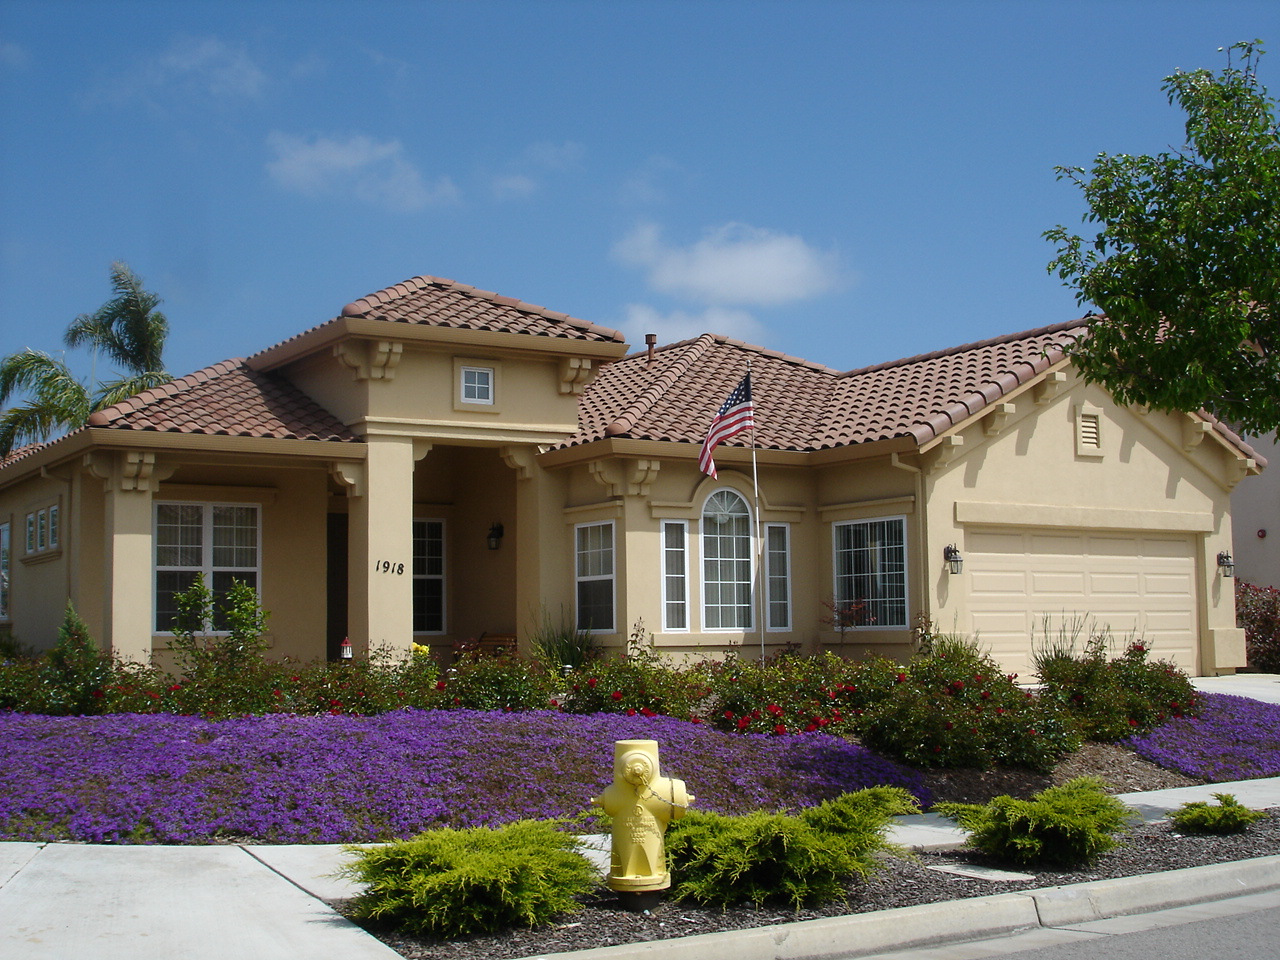 Description Ranch style home in Salinas, California.JPG